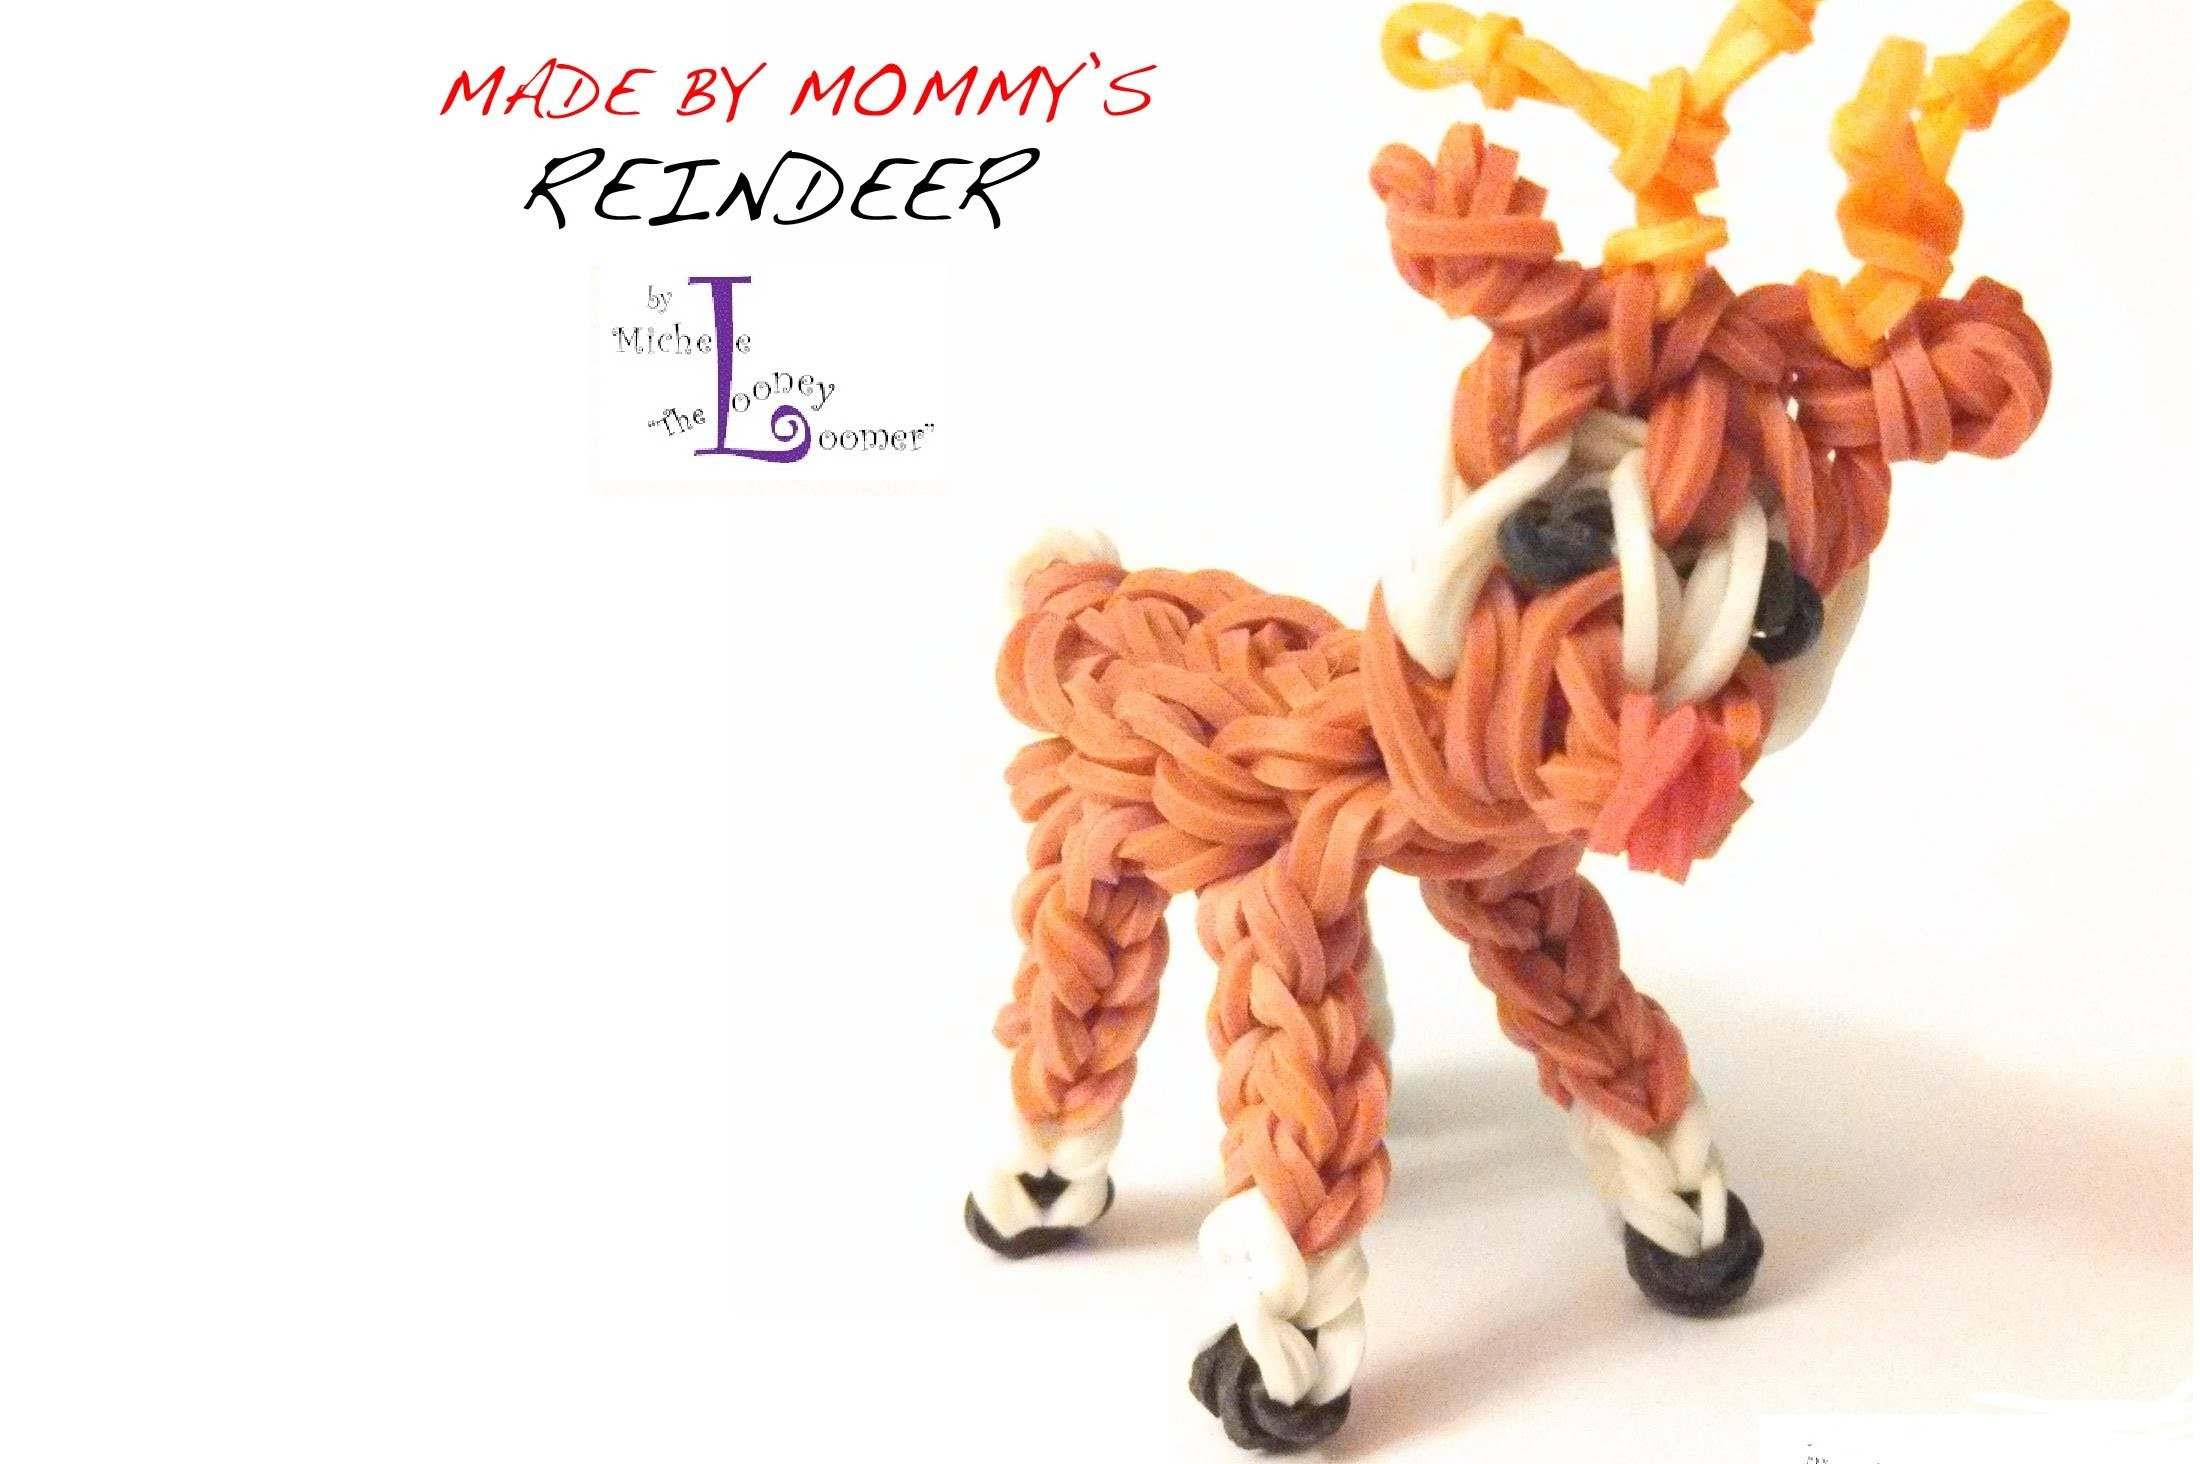 Rainbow Loom Reindeer Charm - Designed by Michele the Looney Loomer